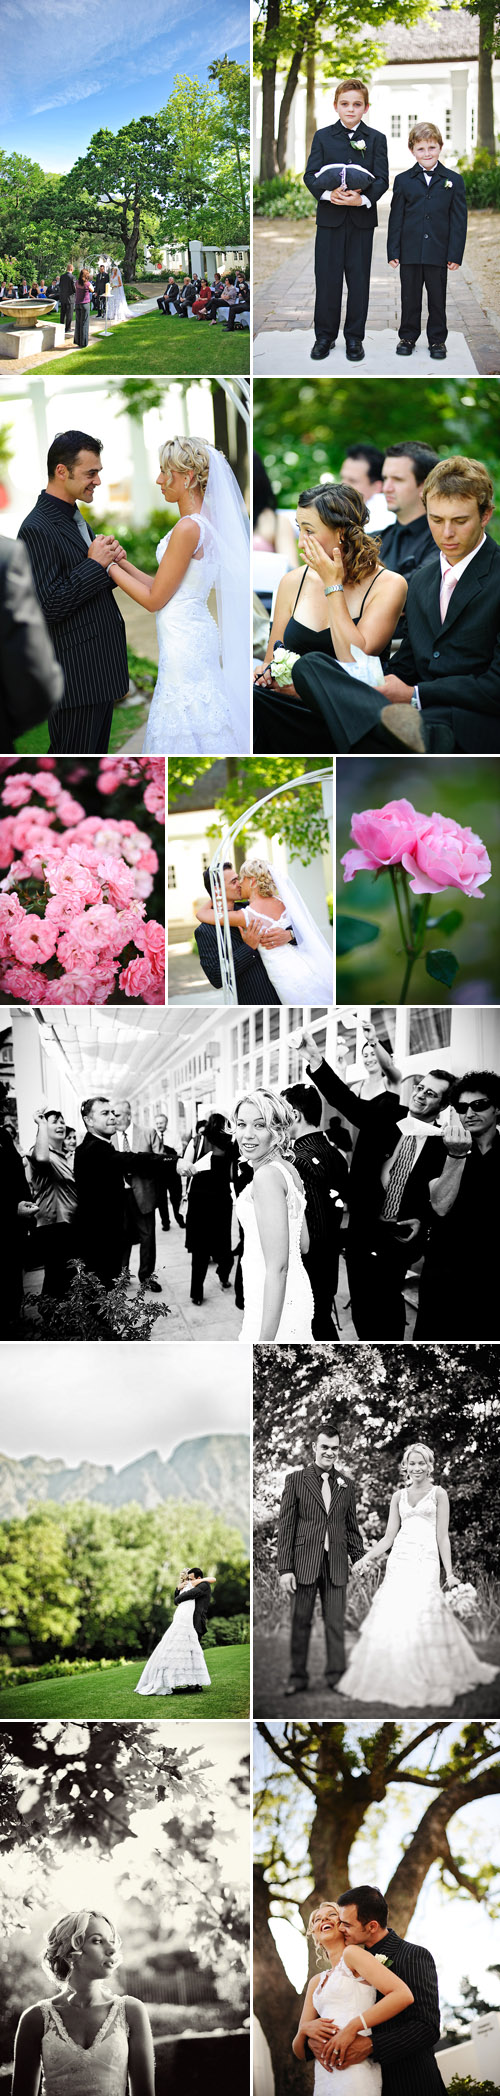 glamorous south african garden real wedding ceremony, black, white, gray and silver wedding color palette, images by Eric Uys